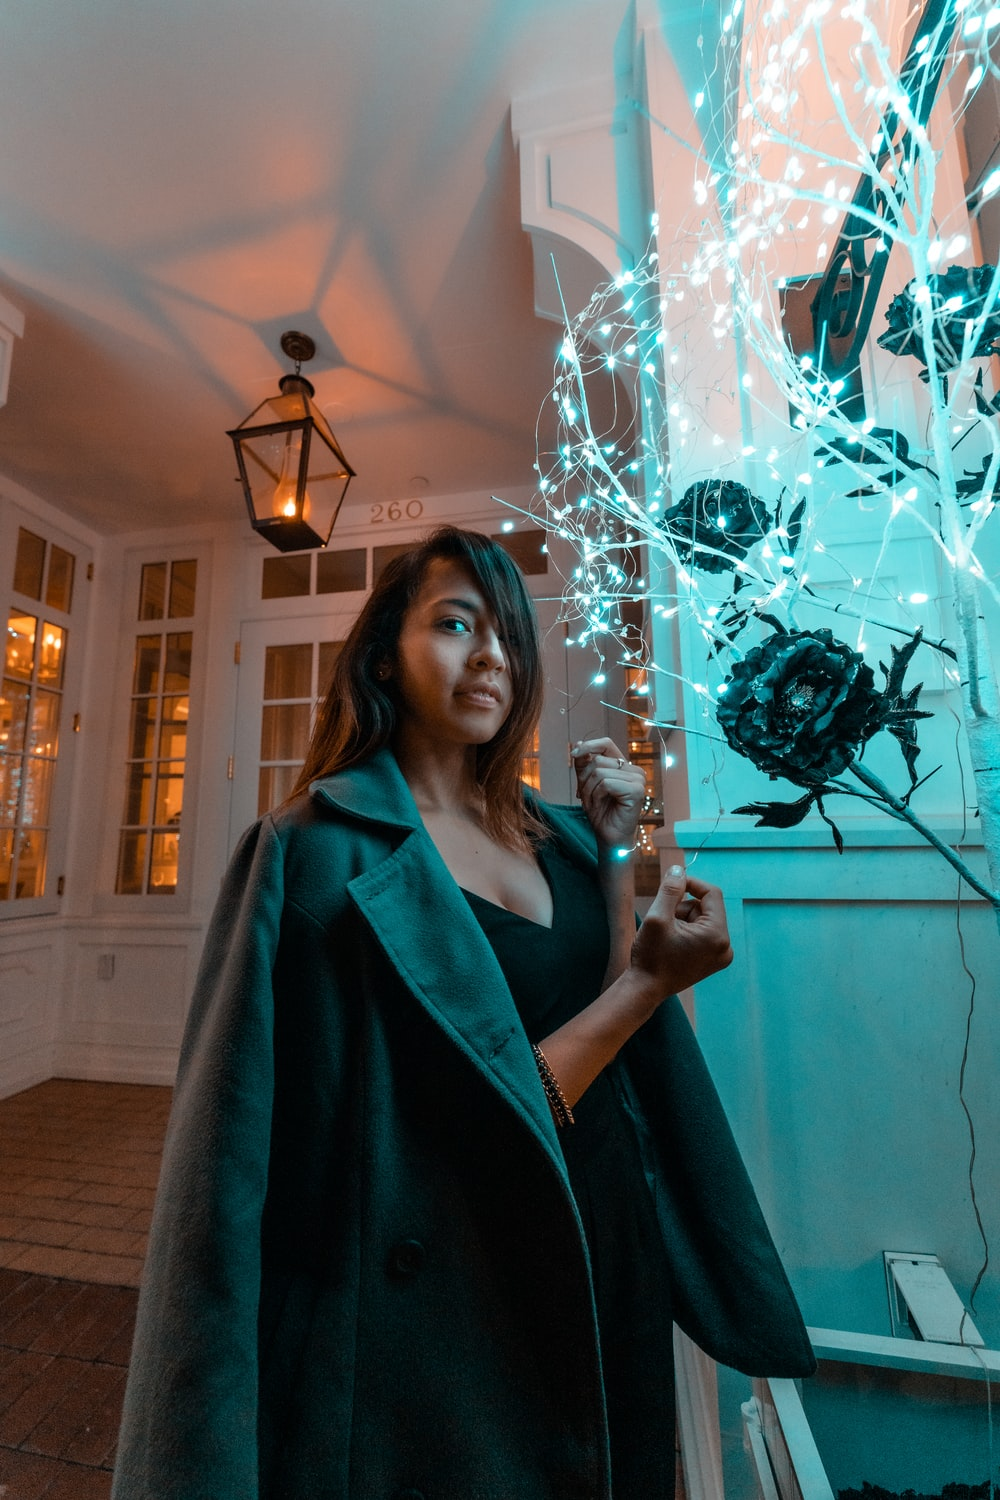 woman standing near lighted string lights